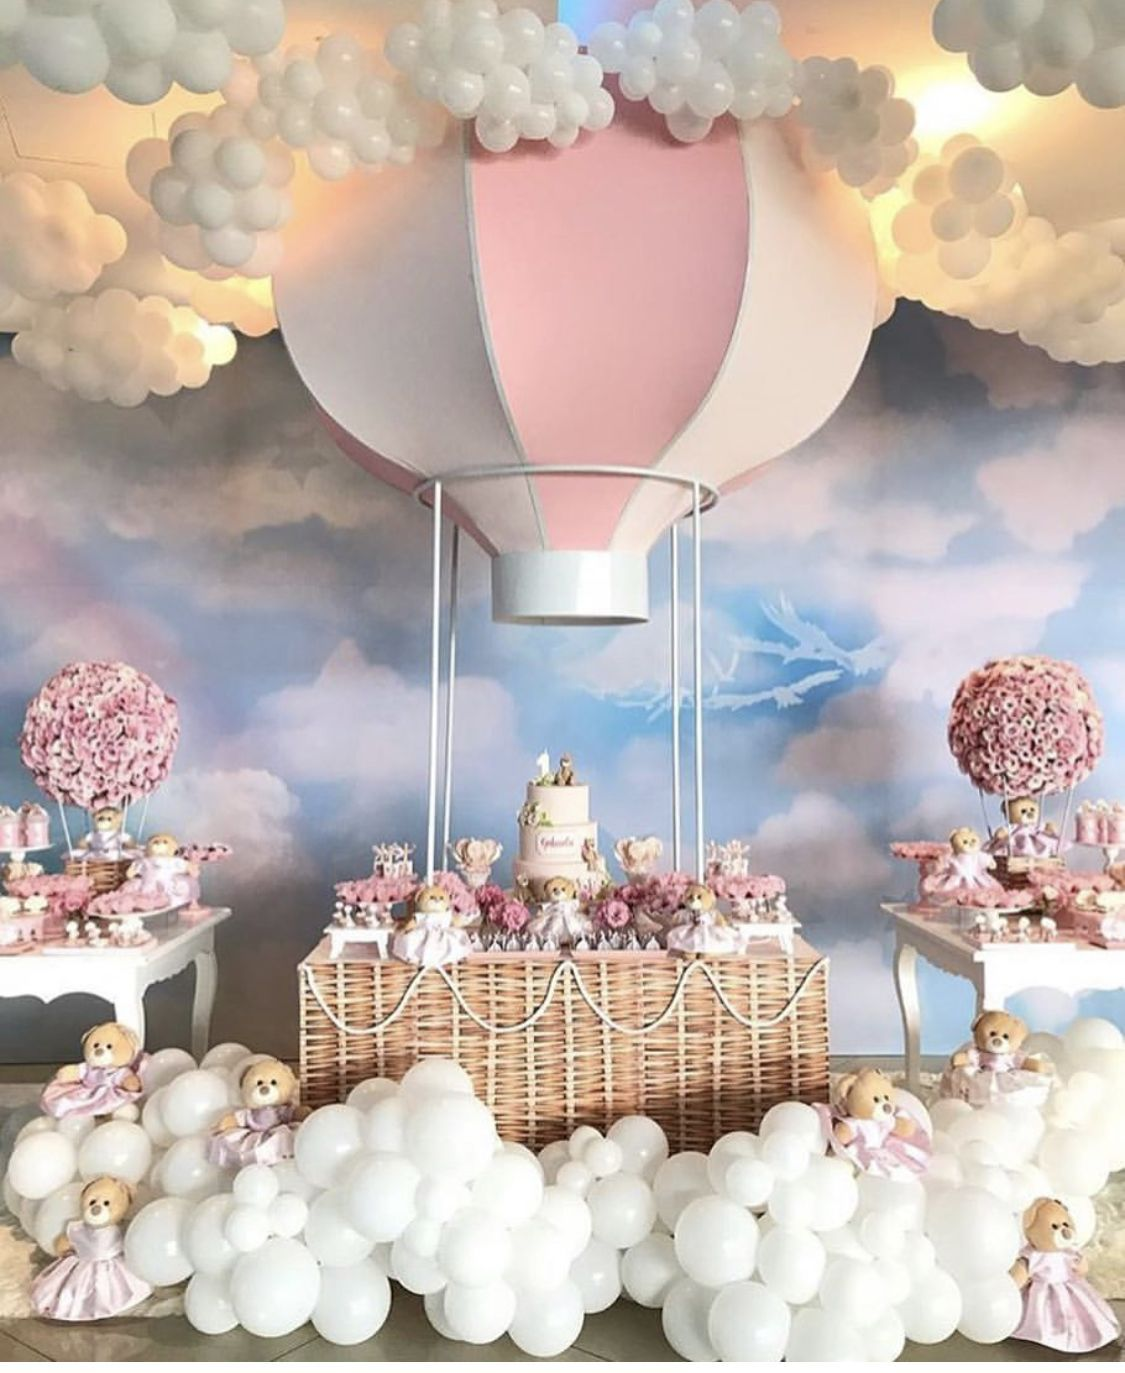 Pin By Zahra Nourani On Home Decor In 2019 Welcome Baby Party